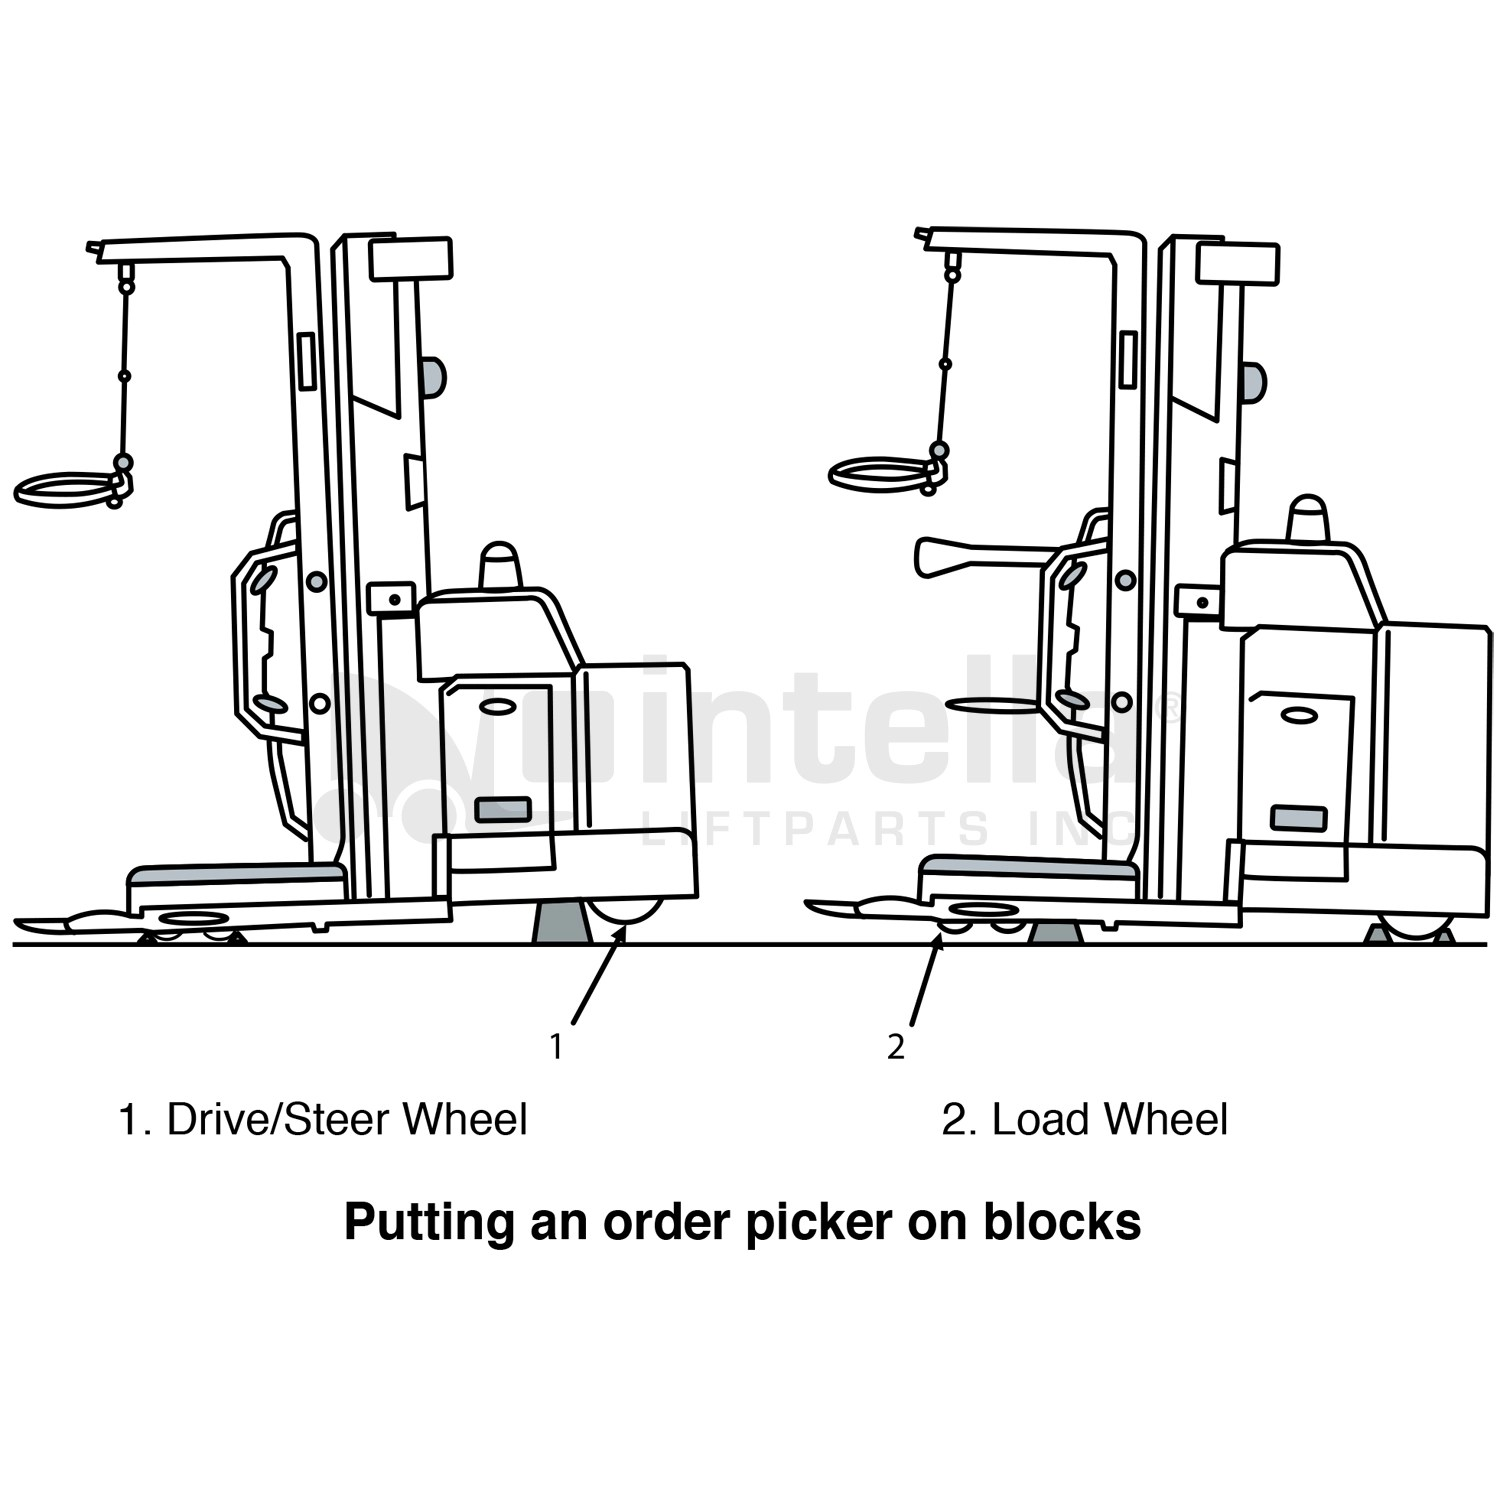 Forklift Blocking Instructions